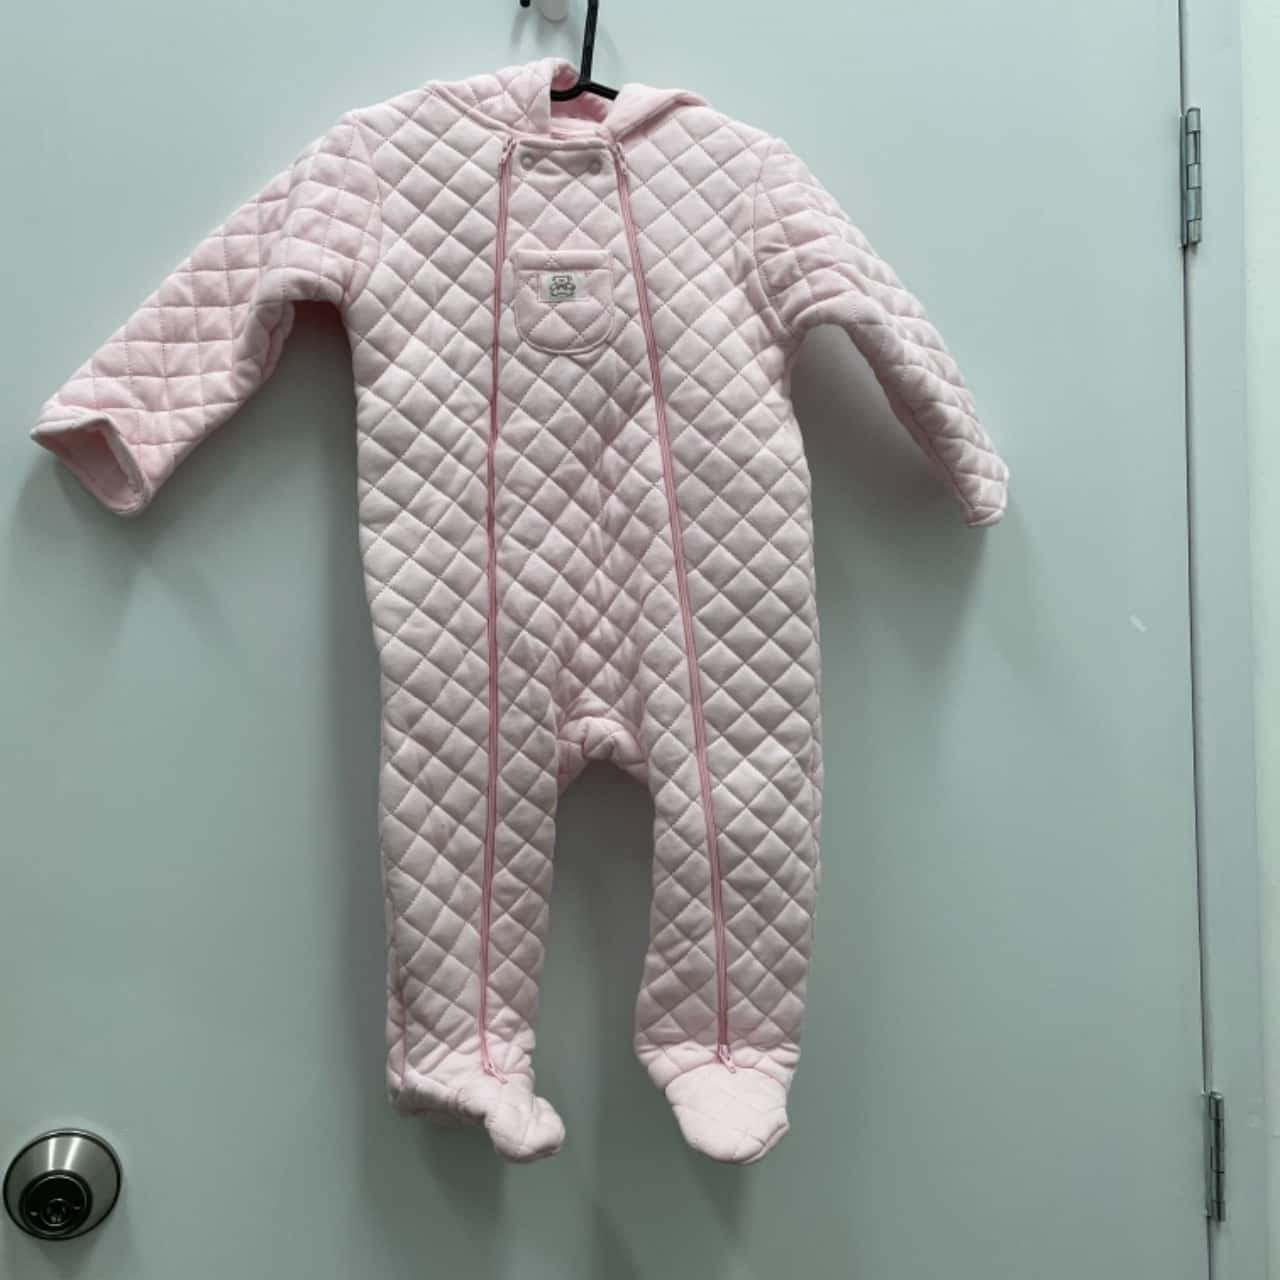 OLLIE'S PLACE Kids BNWT RRP $49.99 Size 1 Winter Onesie Pink